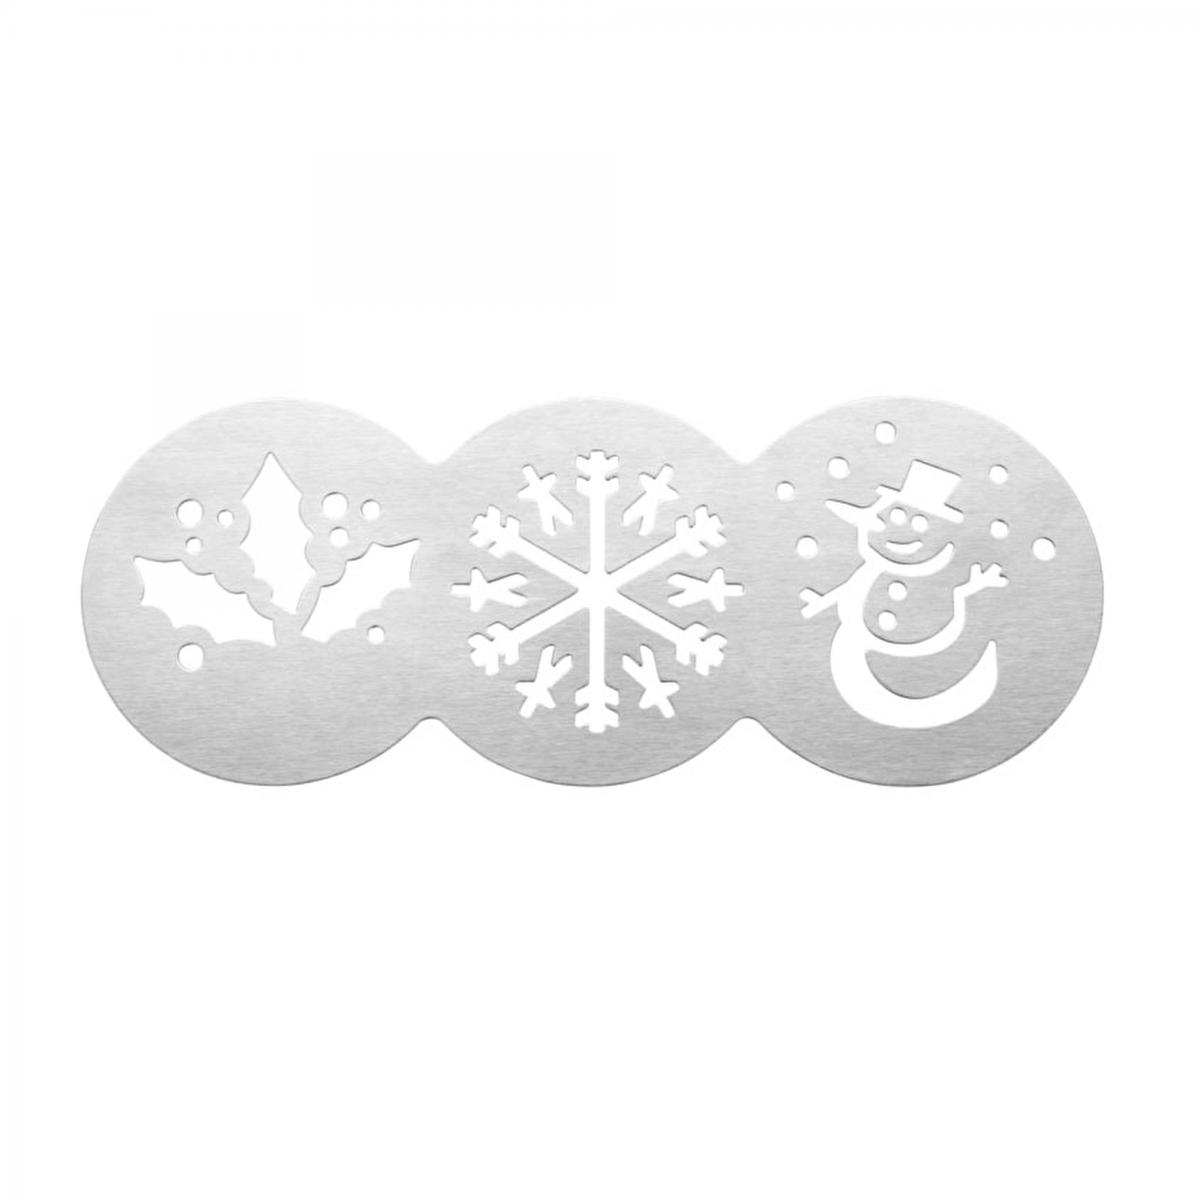 Christmas Cake Stencils - 3 designs – Now Only £2.00